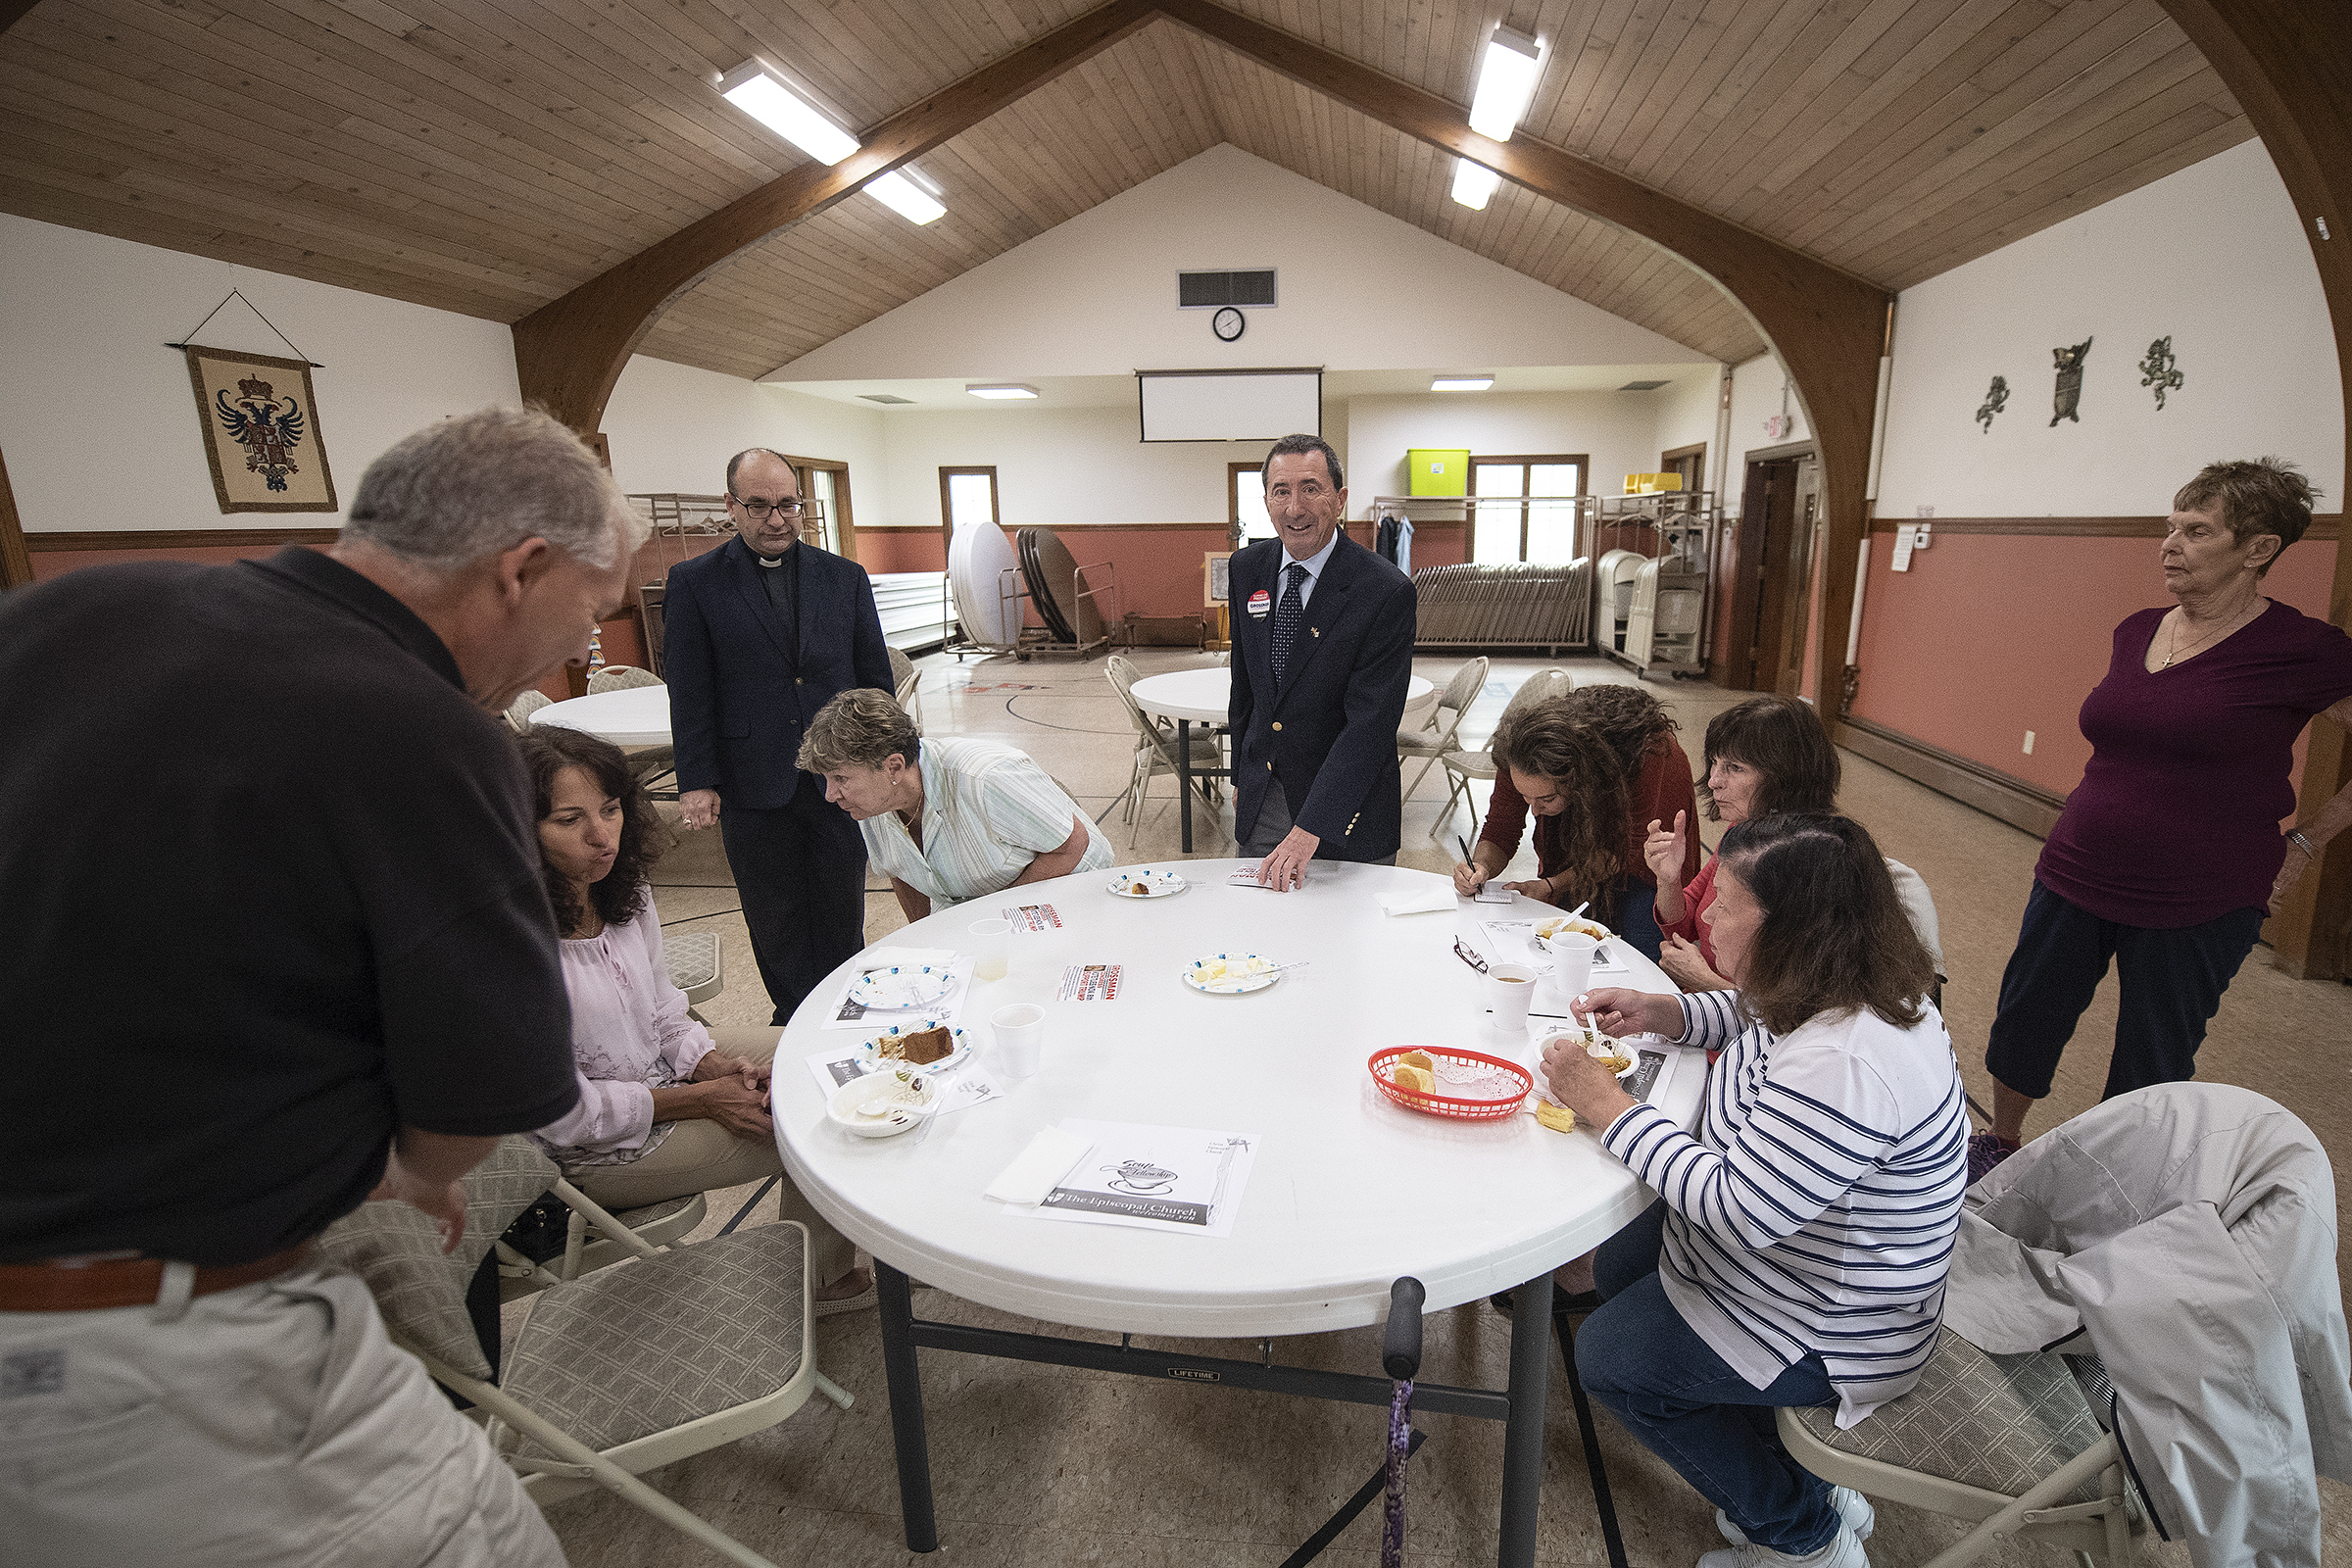 New Jersey 2d district Congressional Candidate Seth Grossman present his platform to Somers Point resident at the Christ Episcopal Church in Somers Point, N.J. Thursday, October 11, 2018. JOSE F. MORENO / Staff Photographer